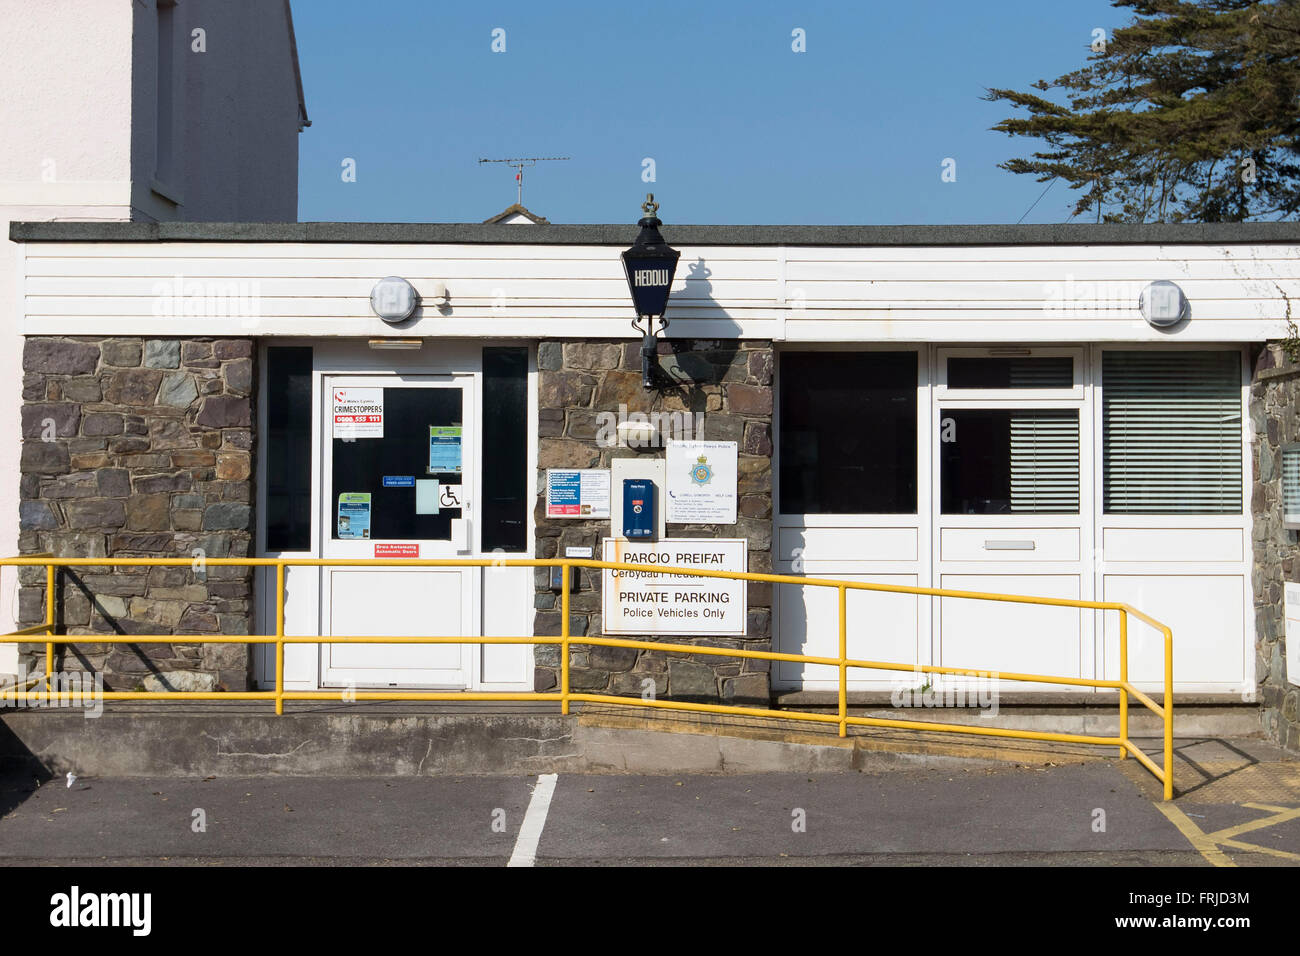 Police station in St. David's, Pembrokeshire, West Wales. - Stock Image